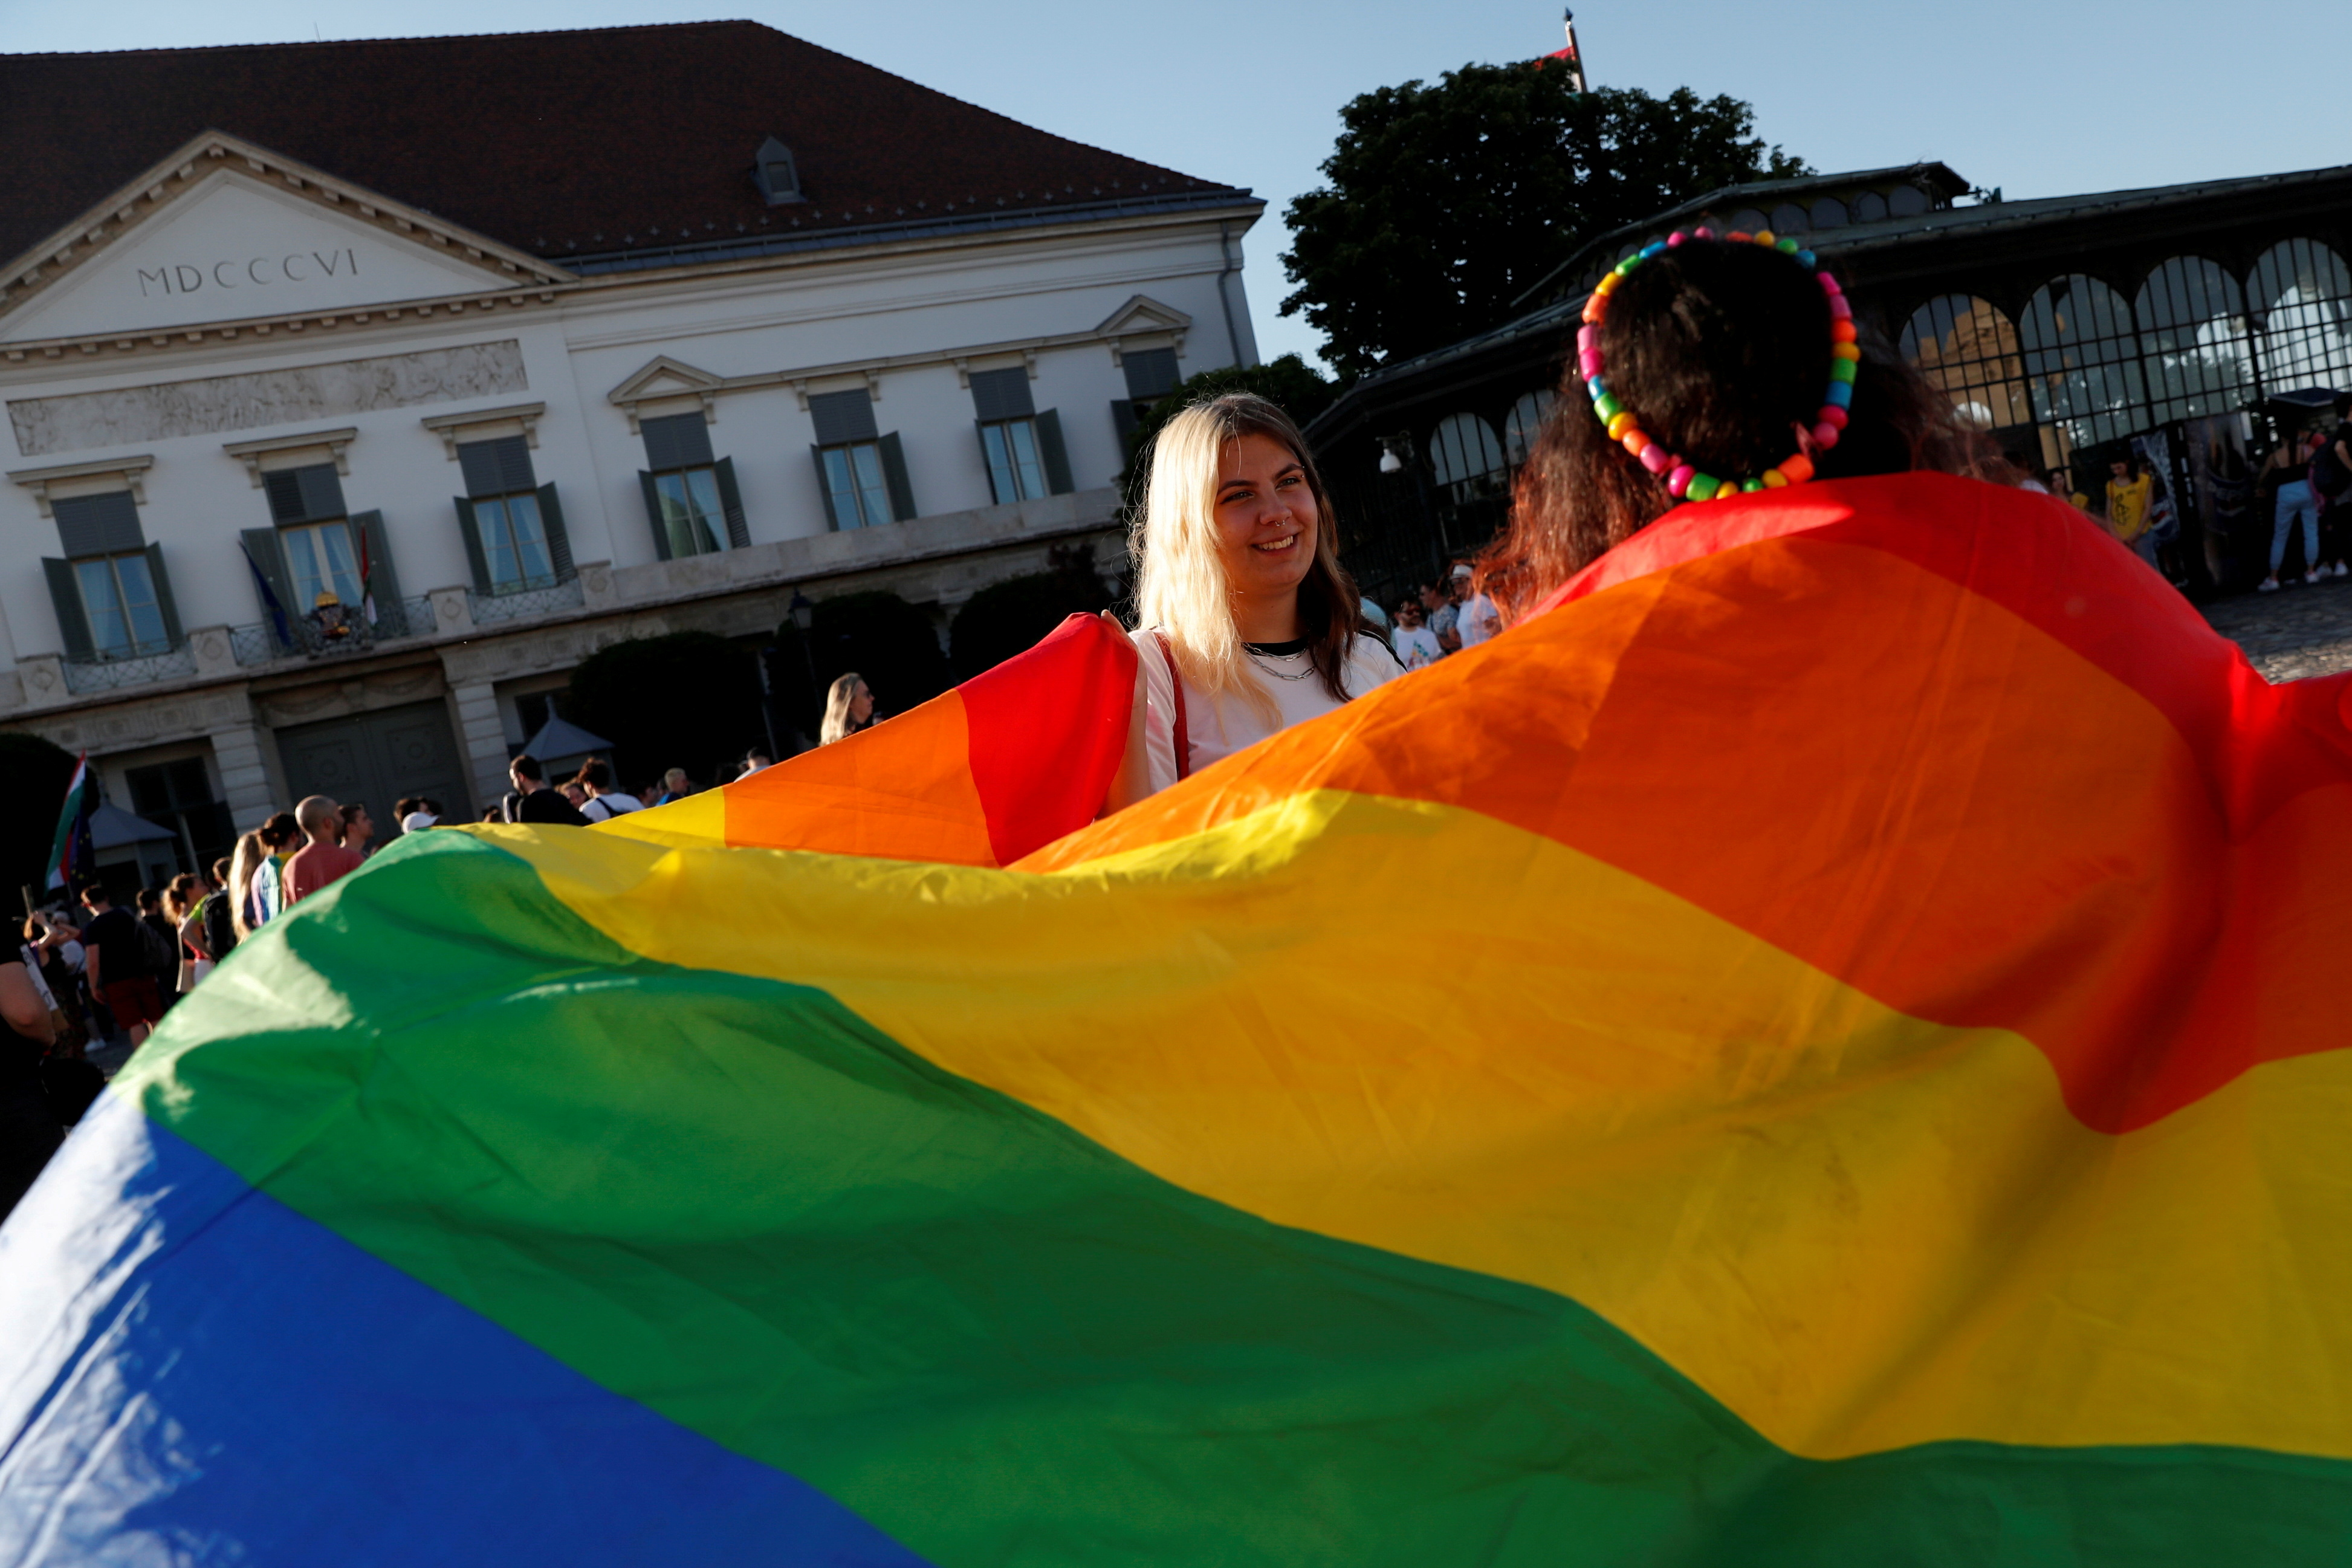 Demonstrators attend a protest against a law that bans LGBTQ content in schools and media at the Presidential Palace in Budapest, Hungary, June 16, 2021. REUTERS/Bernadett Szabo